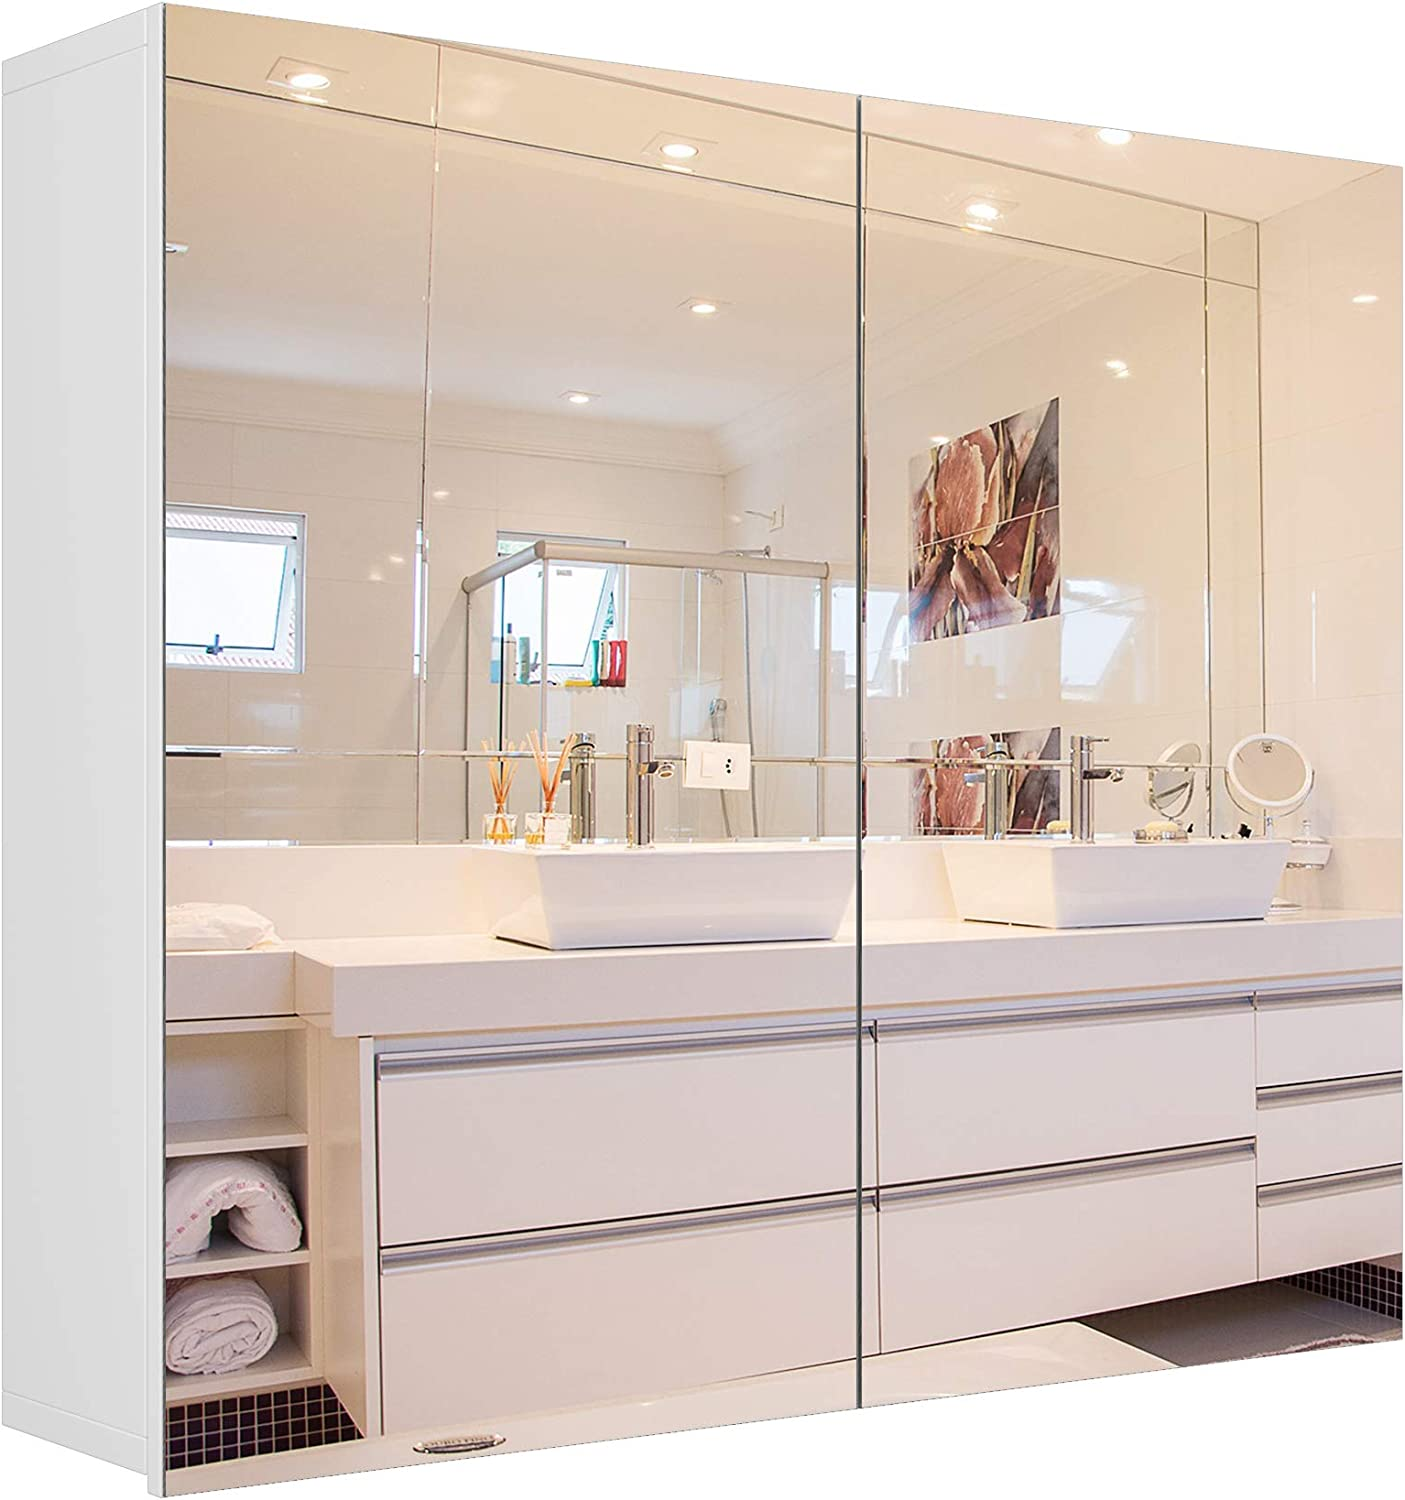 Amazon Com Homfa Bathroom Mirror Cabinet 27 6 X 23 6 Inch Wall Mounted Medicine Cabinet With Adjustable Shelf Storage Mirror Cabinet With Double Doors Recessed Or Surface Mounting White Kitchen Dining